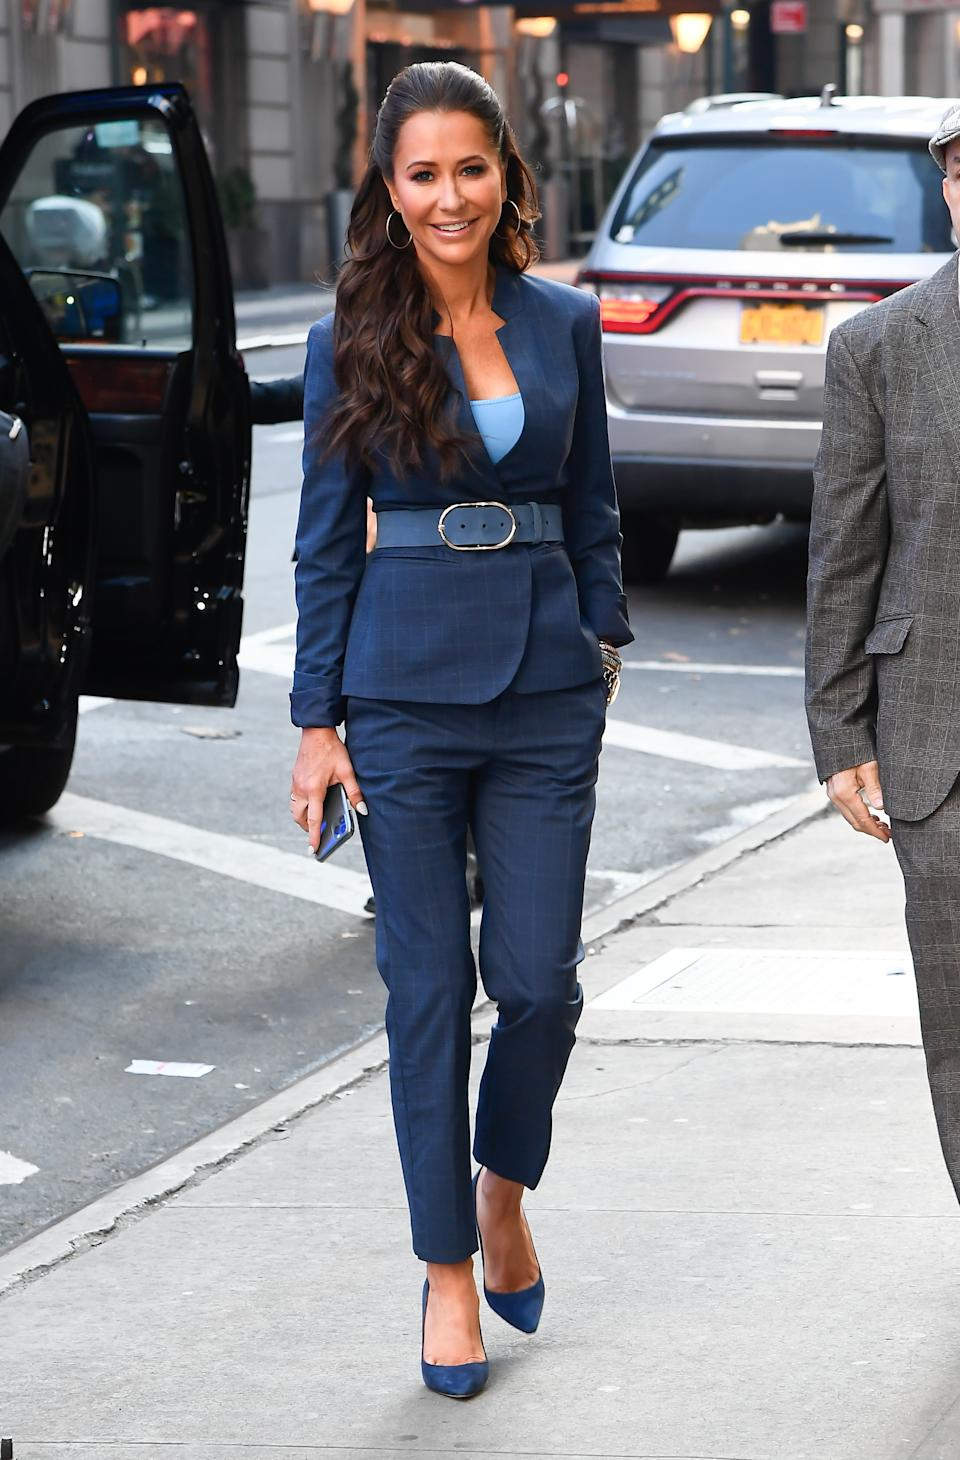 Jessica Mulroney has been accused of threatening Canadian blogger, Sasha Exeter.  (Photo by Raymond Hall/GC Images)